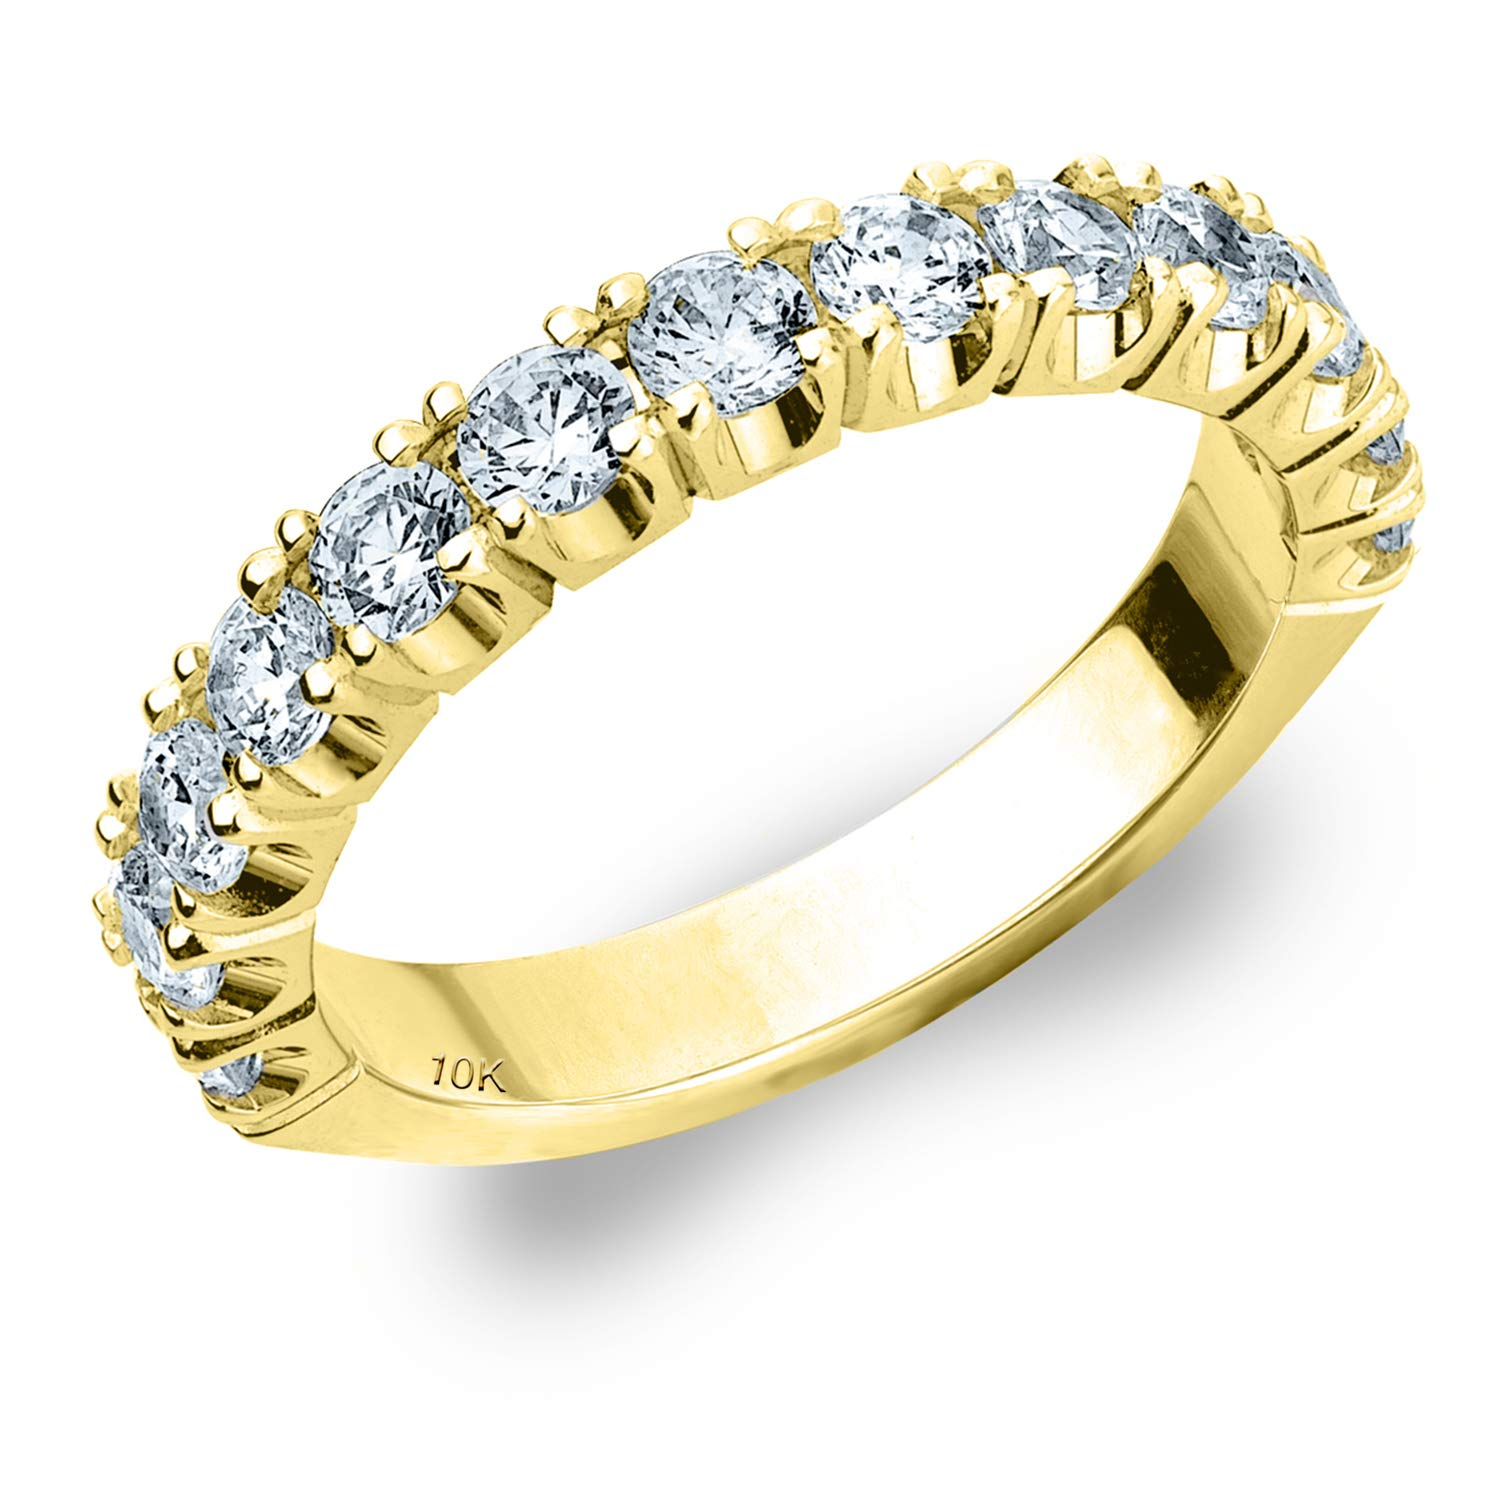 1ct Genuine Diamond Ring, 4-Prong Wedding Anniversary Band in 10K Yellow Gold - Finger Size 5.25